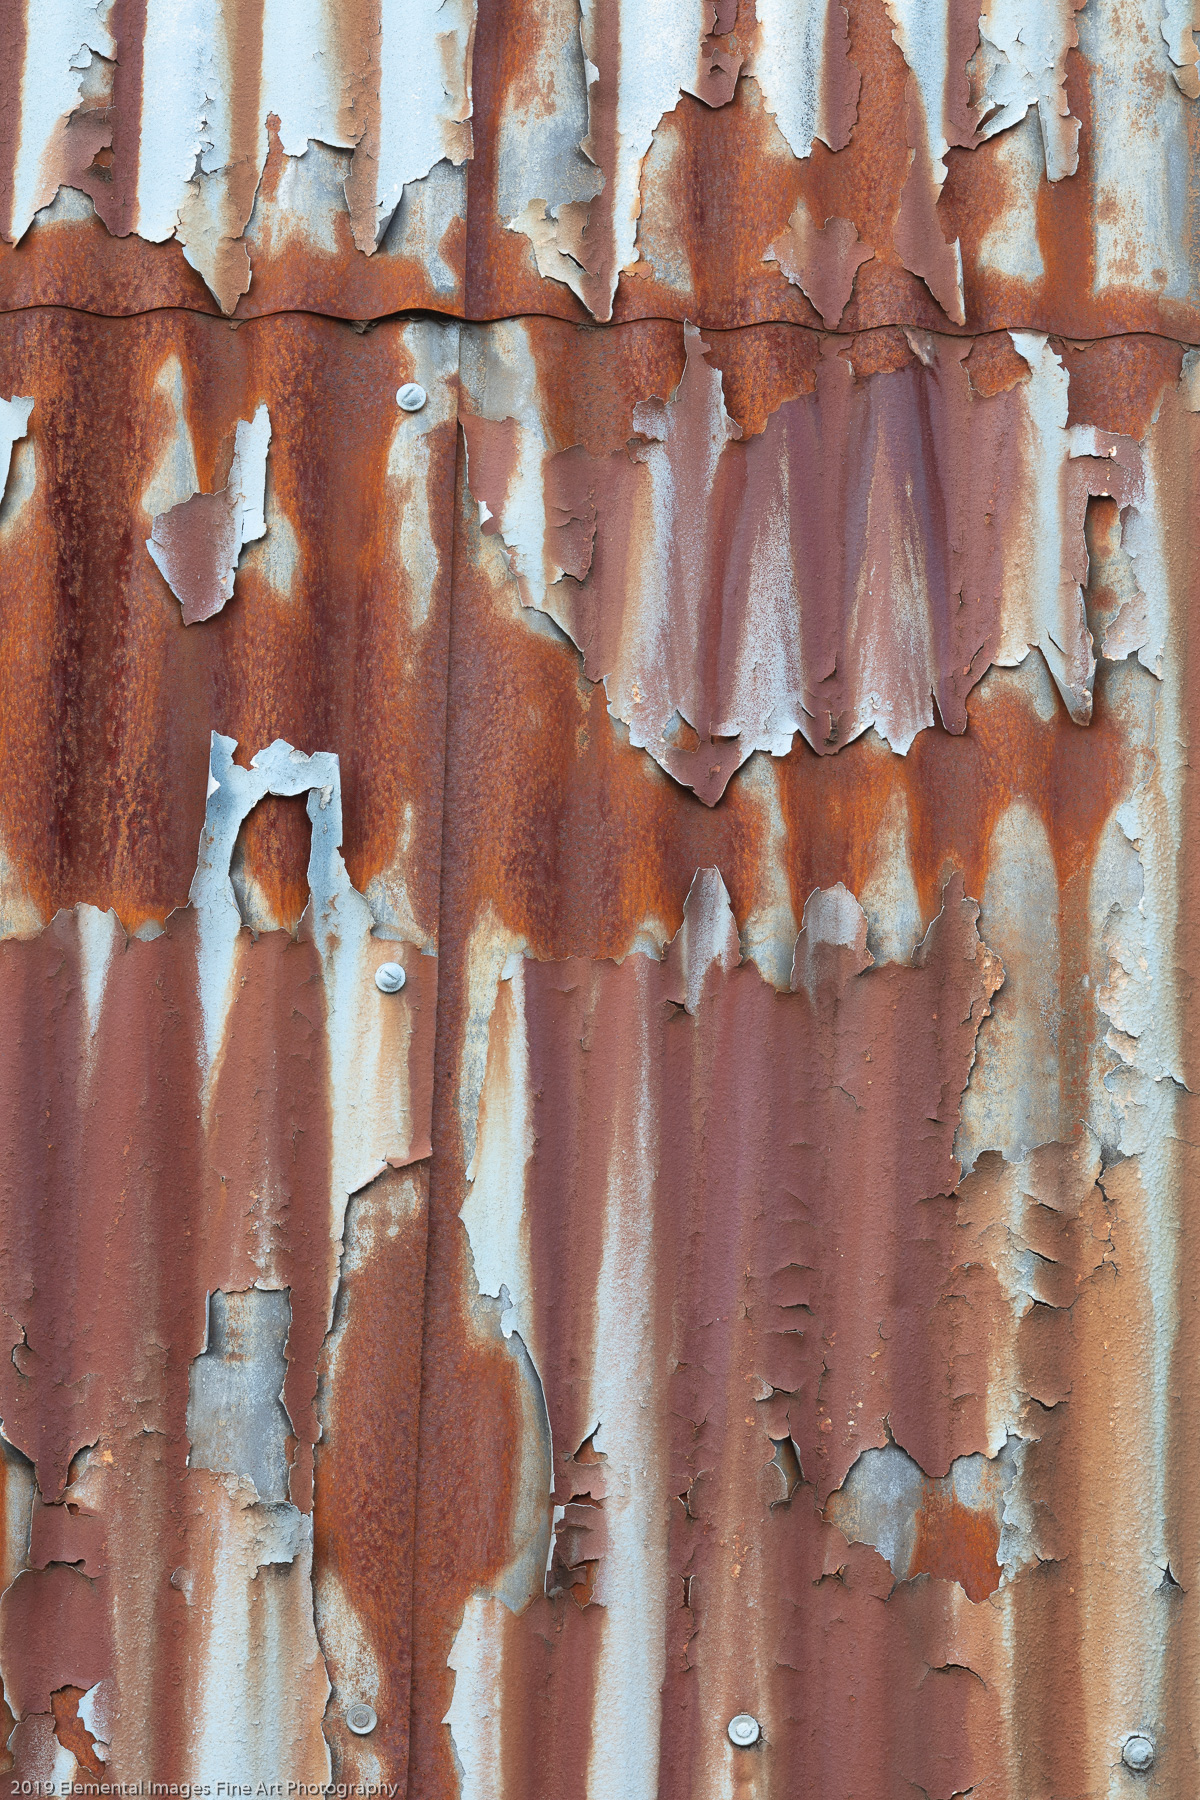 Rust #12 |  |  | USA - © 2019 Elemental Images Fine Art Photography - All Rights Reserved Worldwide